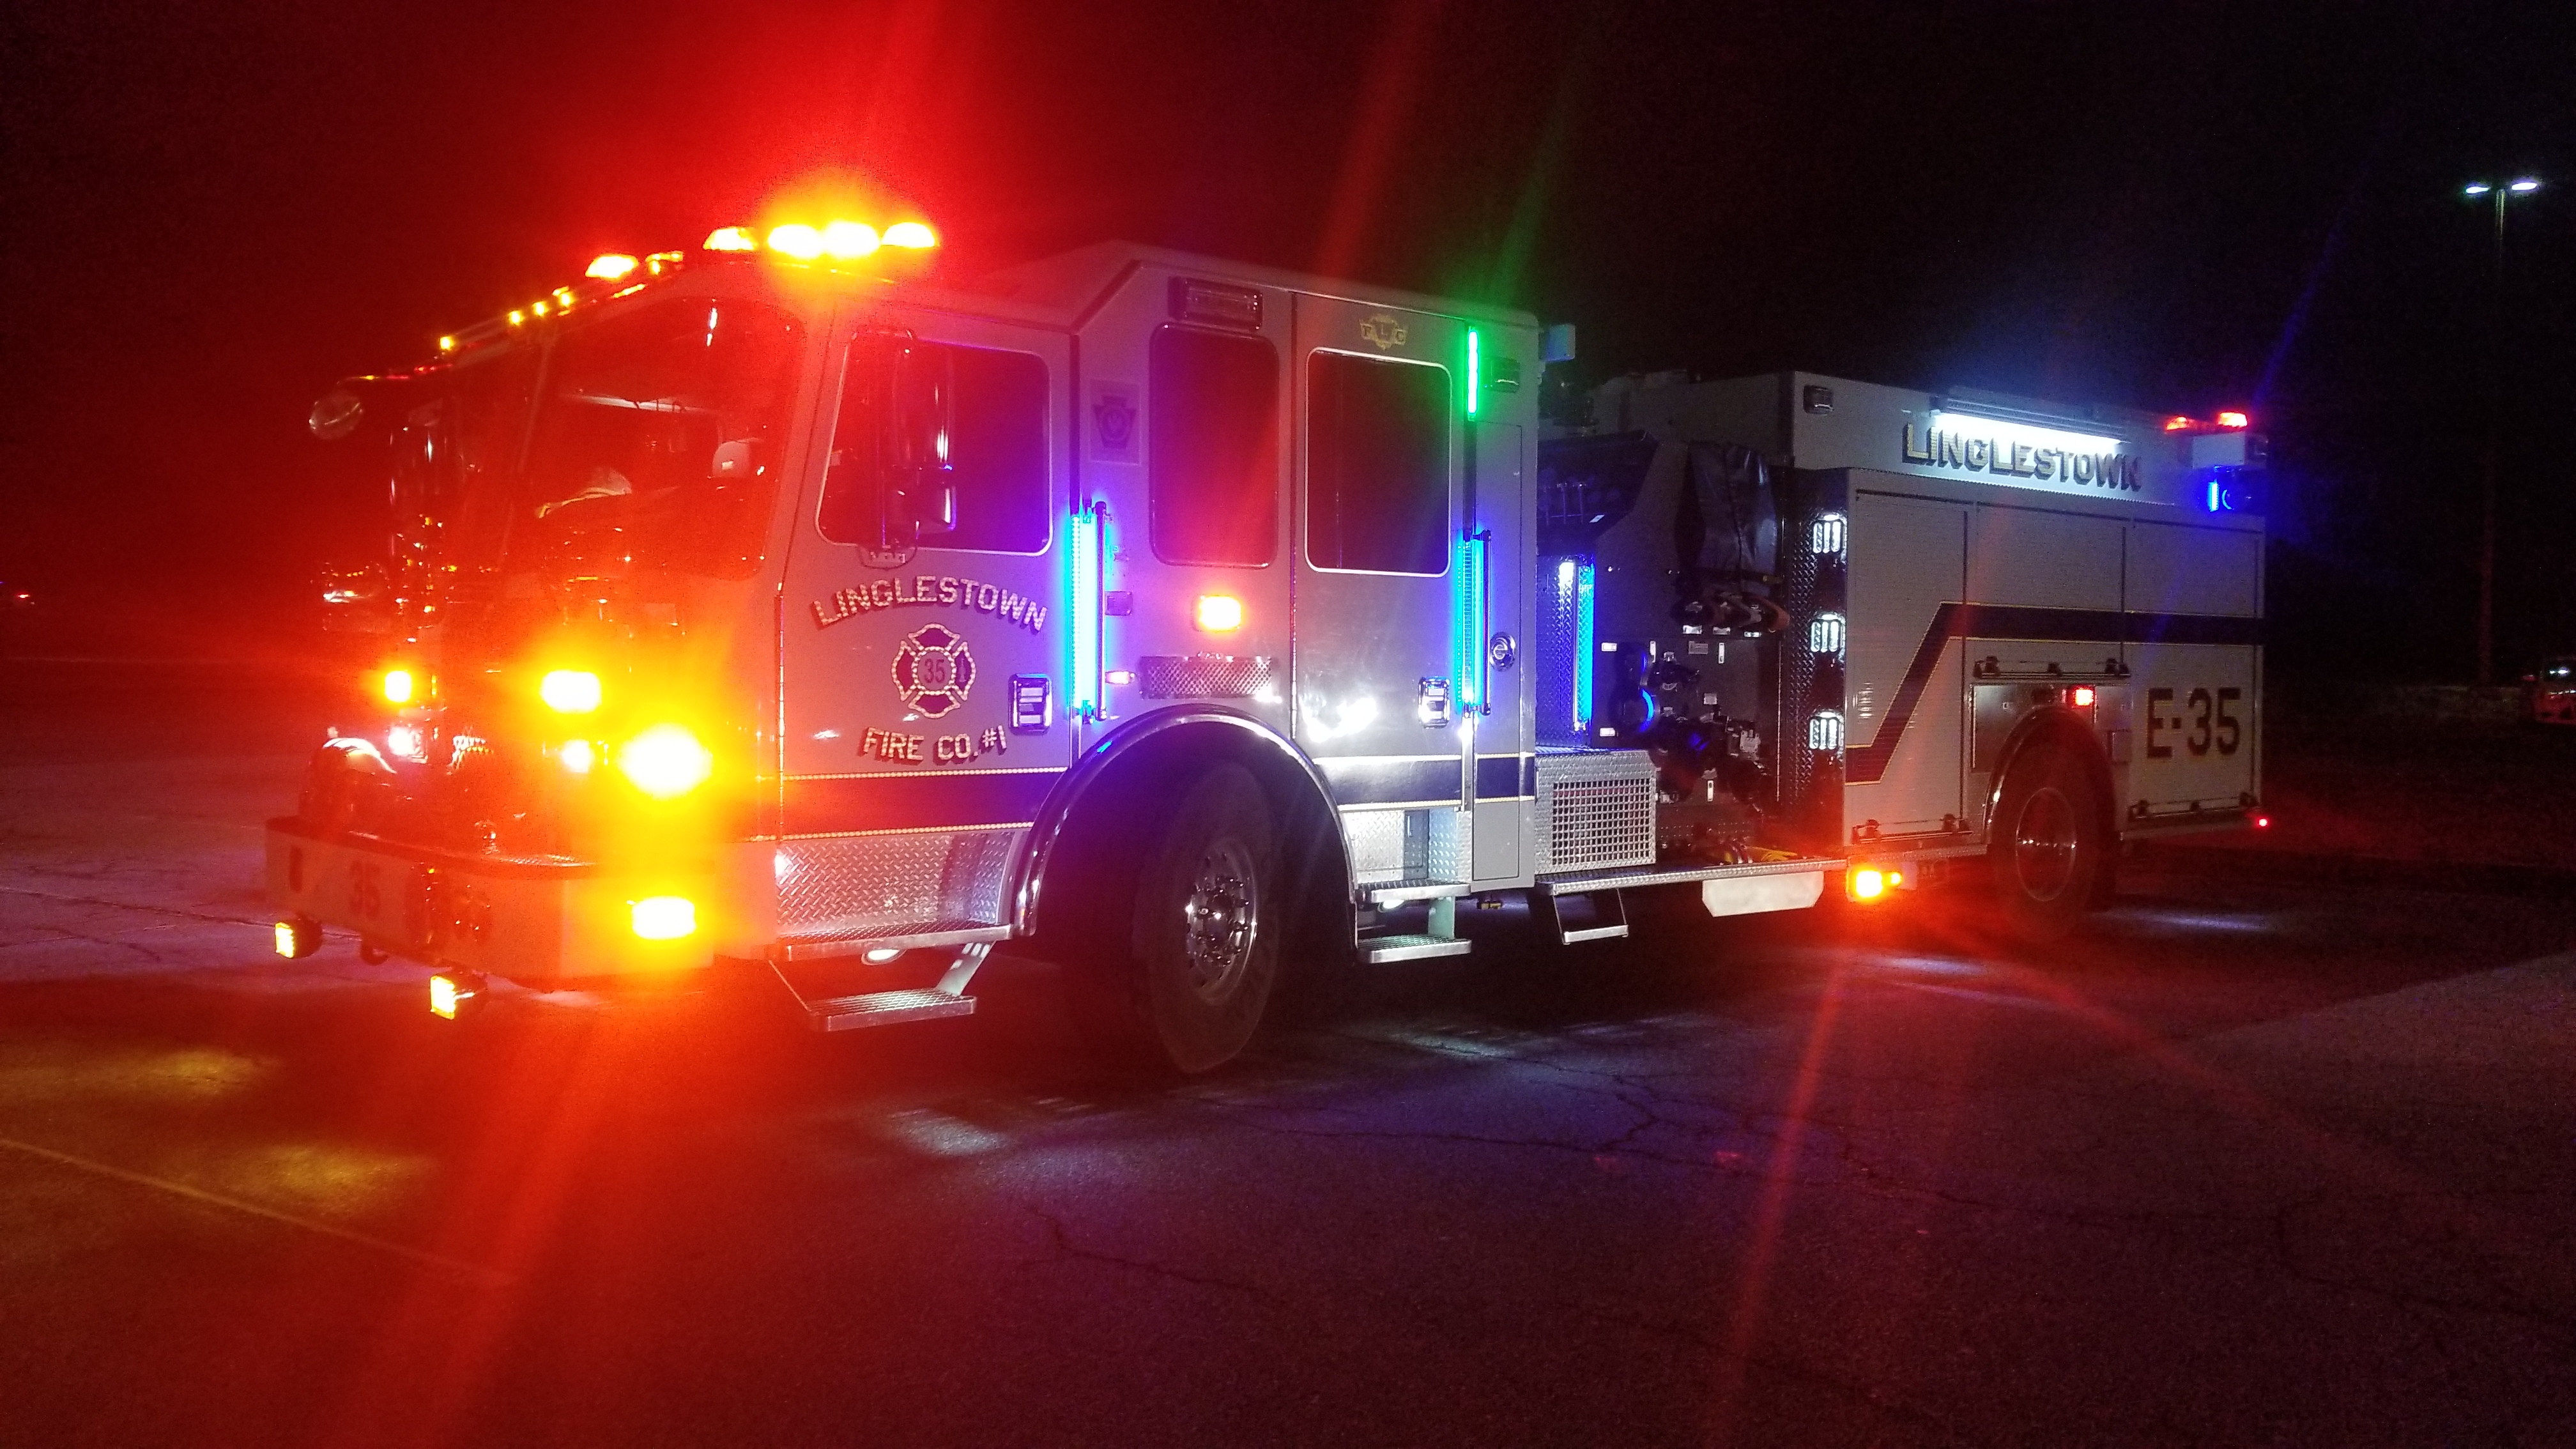 Fire caused by smoking kills woman at retirement community